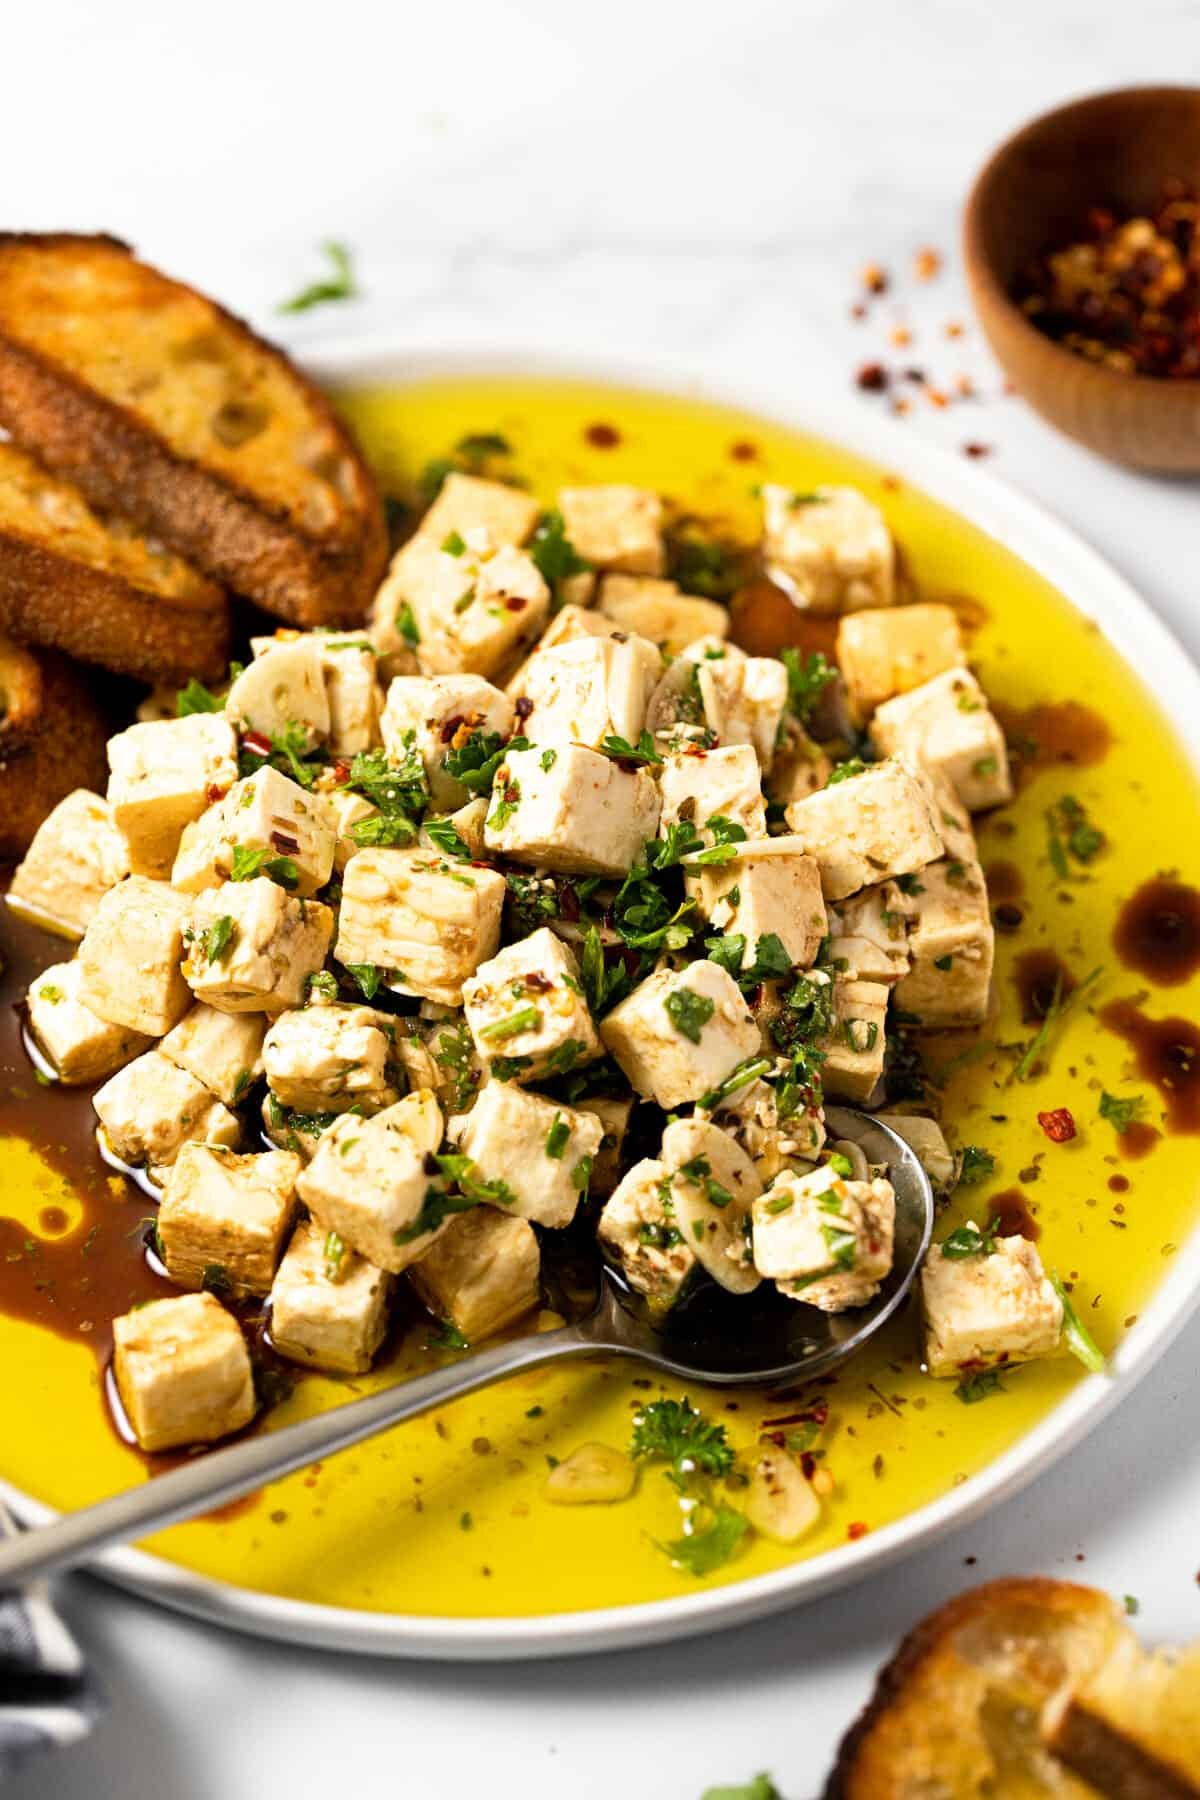 White plate filled with marinated squares of feta garnished with parsley